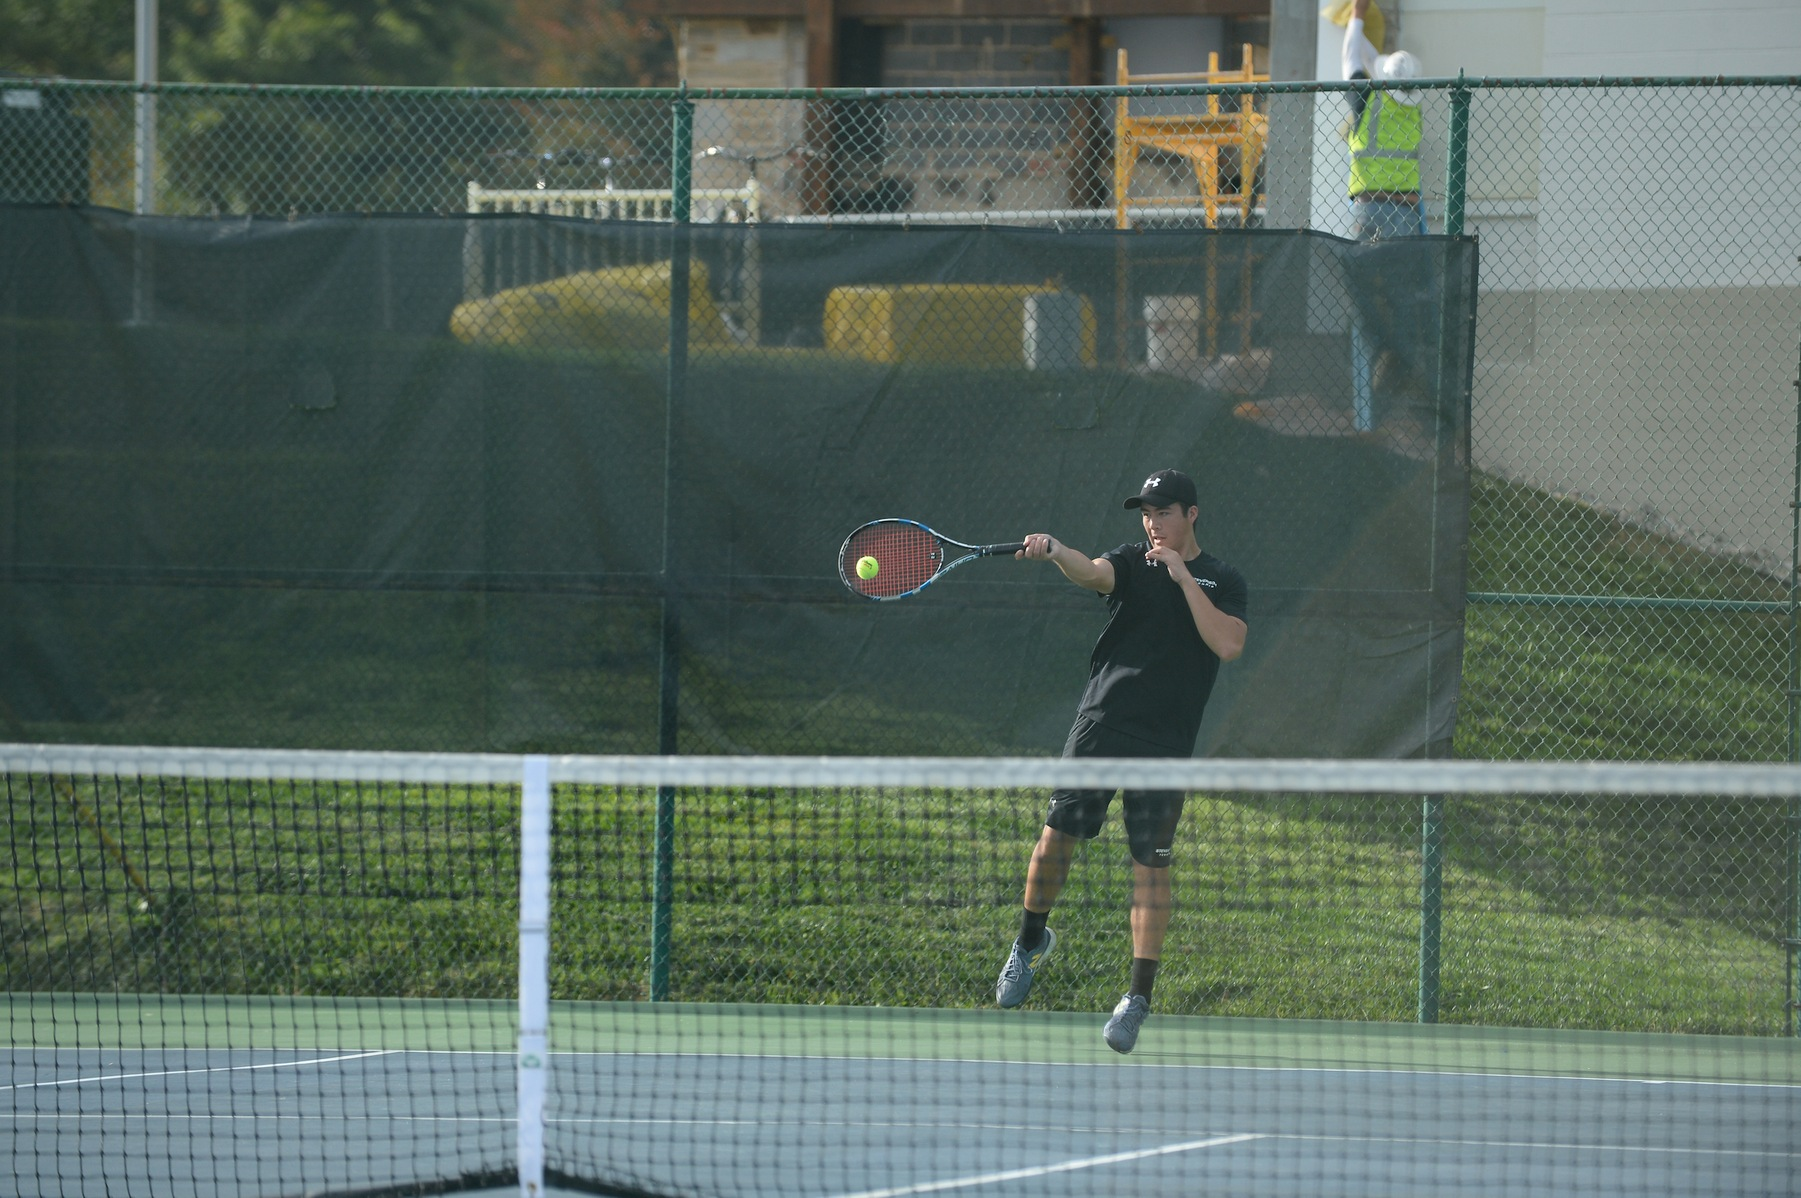 Sturniolo, Ryan Pick Up Straight-Set Victories in Mustangs' 7-2 Loss to Juniata